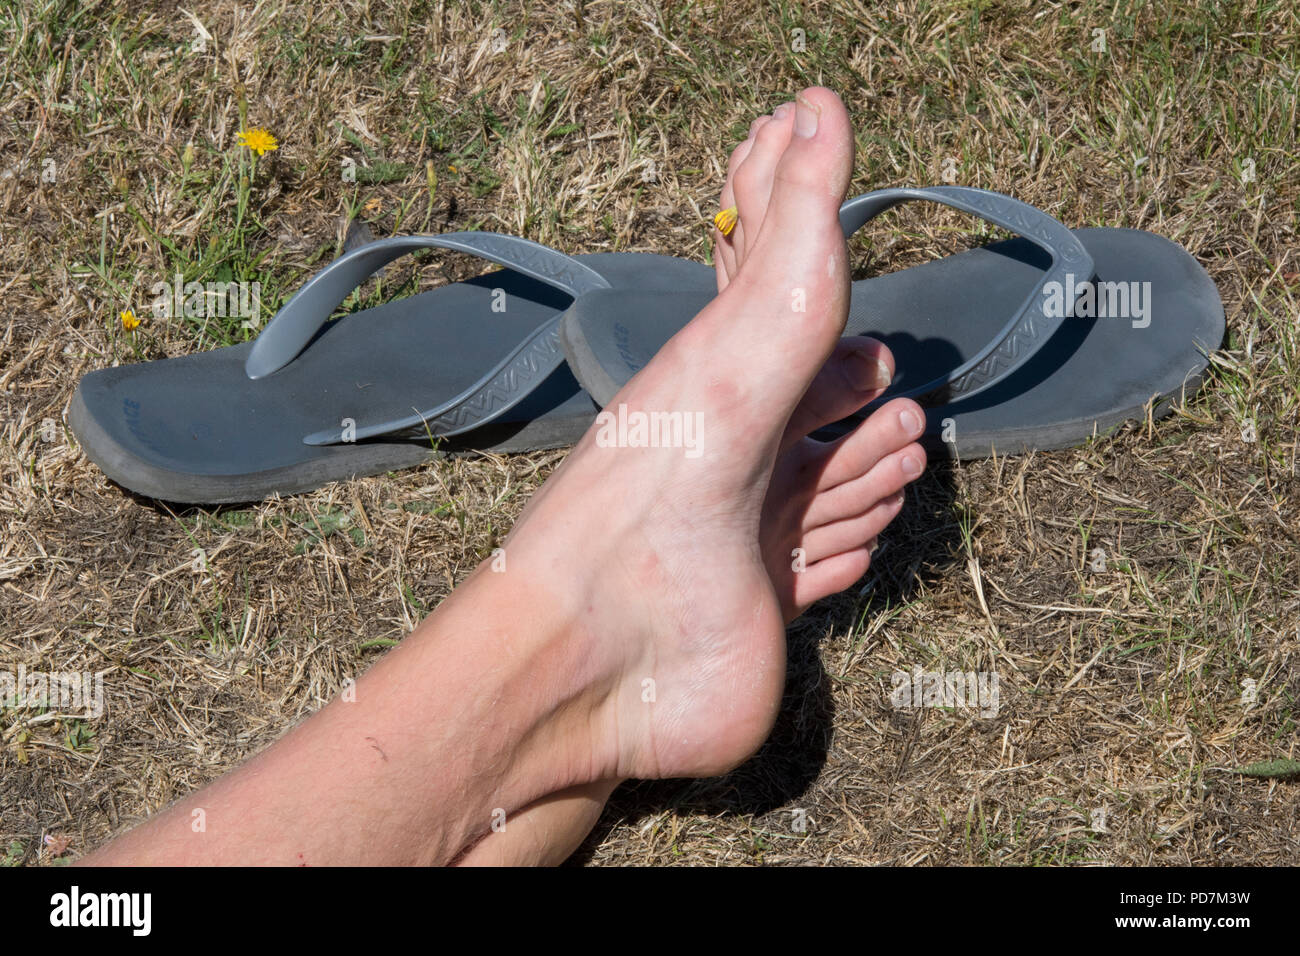 48749c721f3984 a pair of feet and some flip flops rubber footwear for comfort. - Stock  Image